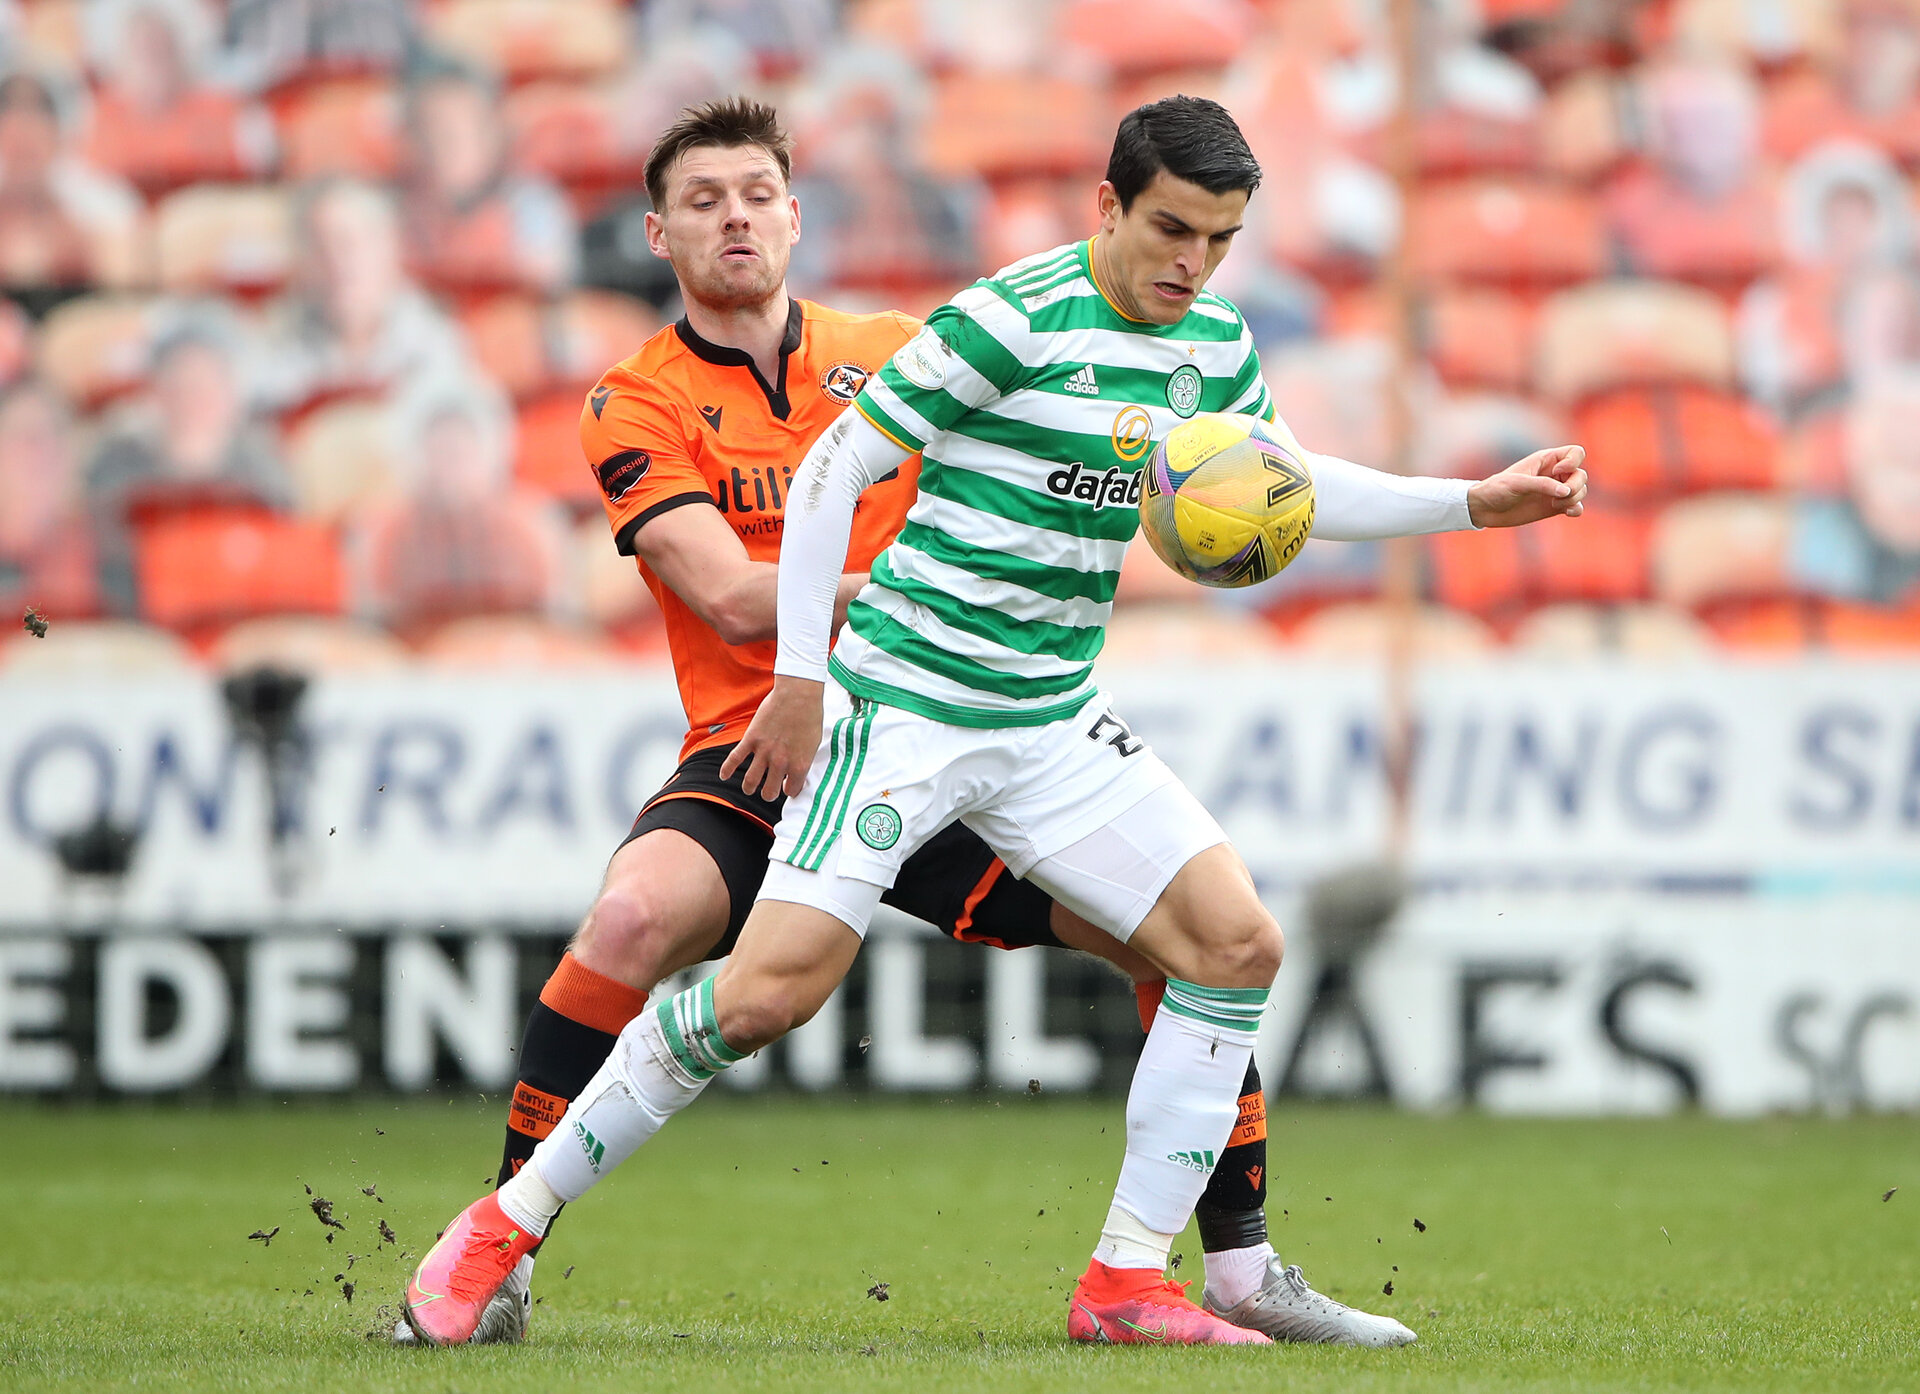 DUNDEE, SCOTLAND - MARCH 07: Ryan Edwards of Dundee United battles for possession with Mohamed Elyounoussi of Celtic during the Ladbrokes Scottish Premiership match between Dundee and Celtic at Tannadice Park on March 07, 2021 in Dundee, Scotland. Sporting stadiums around the UK remain under strict restrictions due to the Coronavirus Pandemic as Government social distancing laws prohibit fans inside venues resulting in games being played behind closed doors.  (Photo by Ian MacNicol/Getty Images)